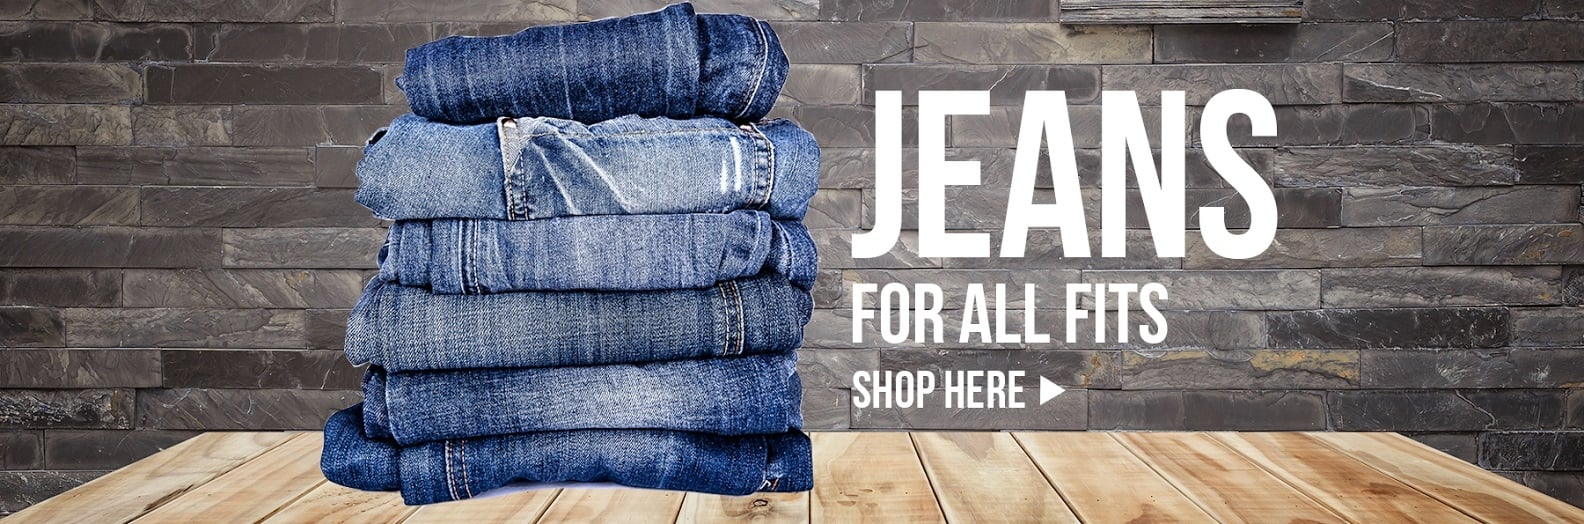 Jeans for All Fits